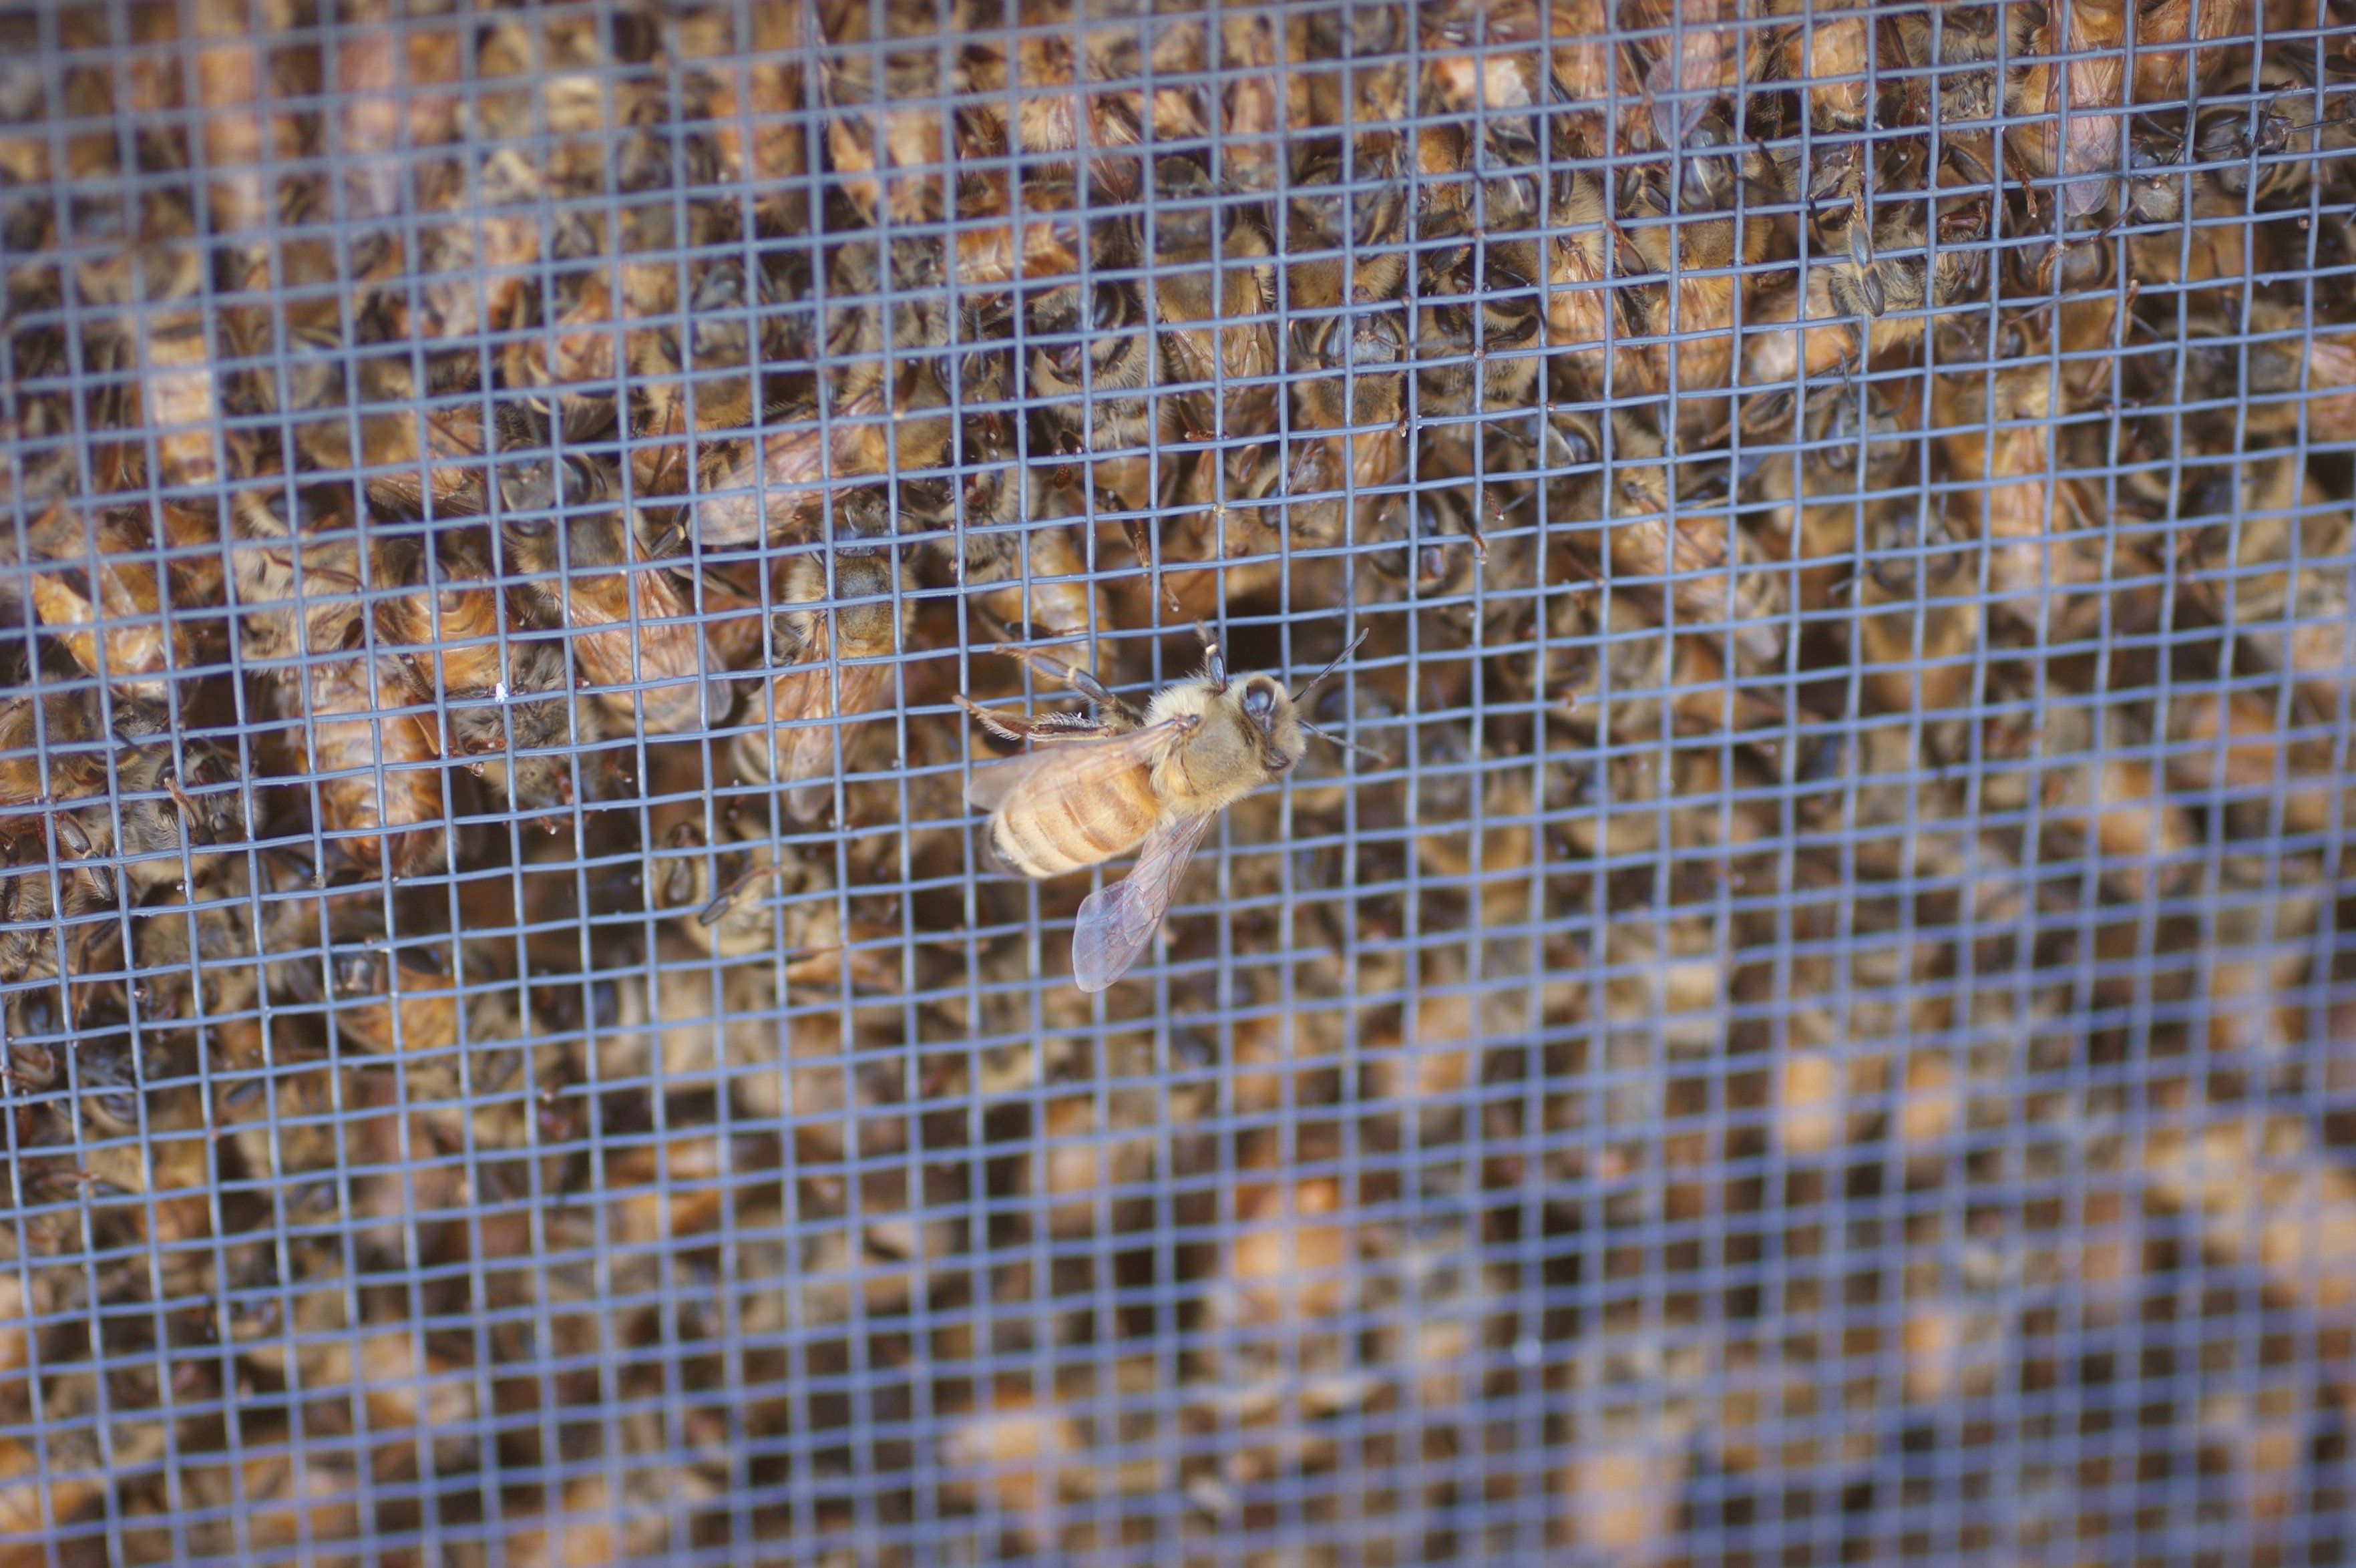 bees up close The last couple of days...